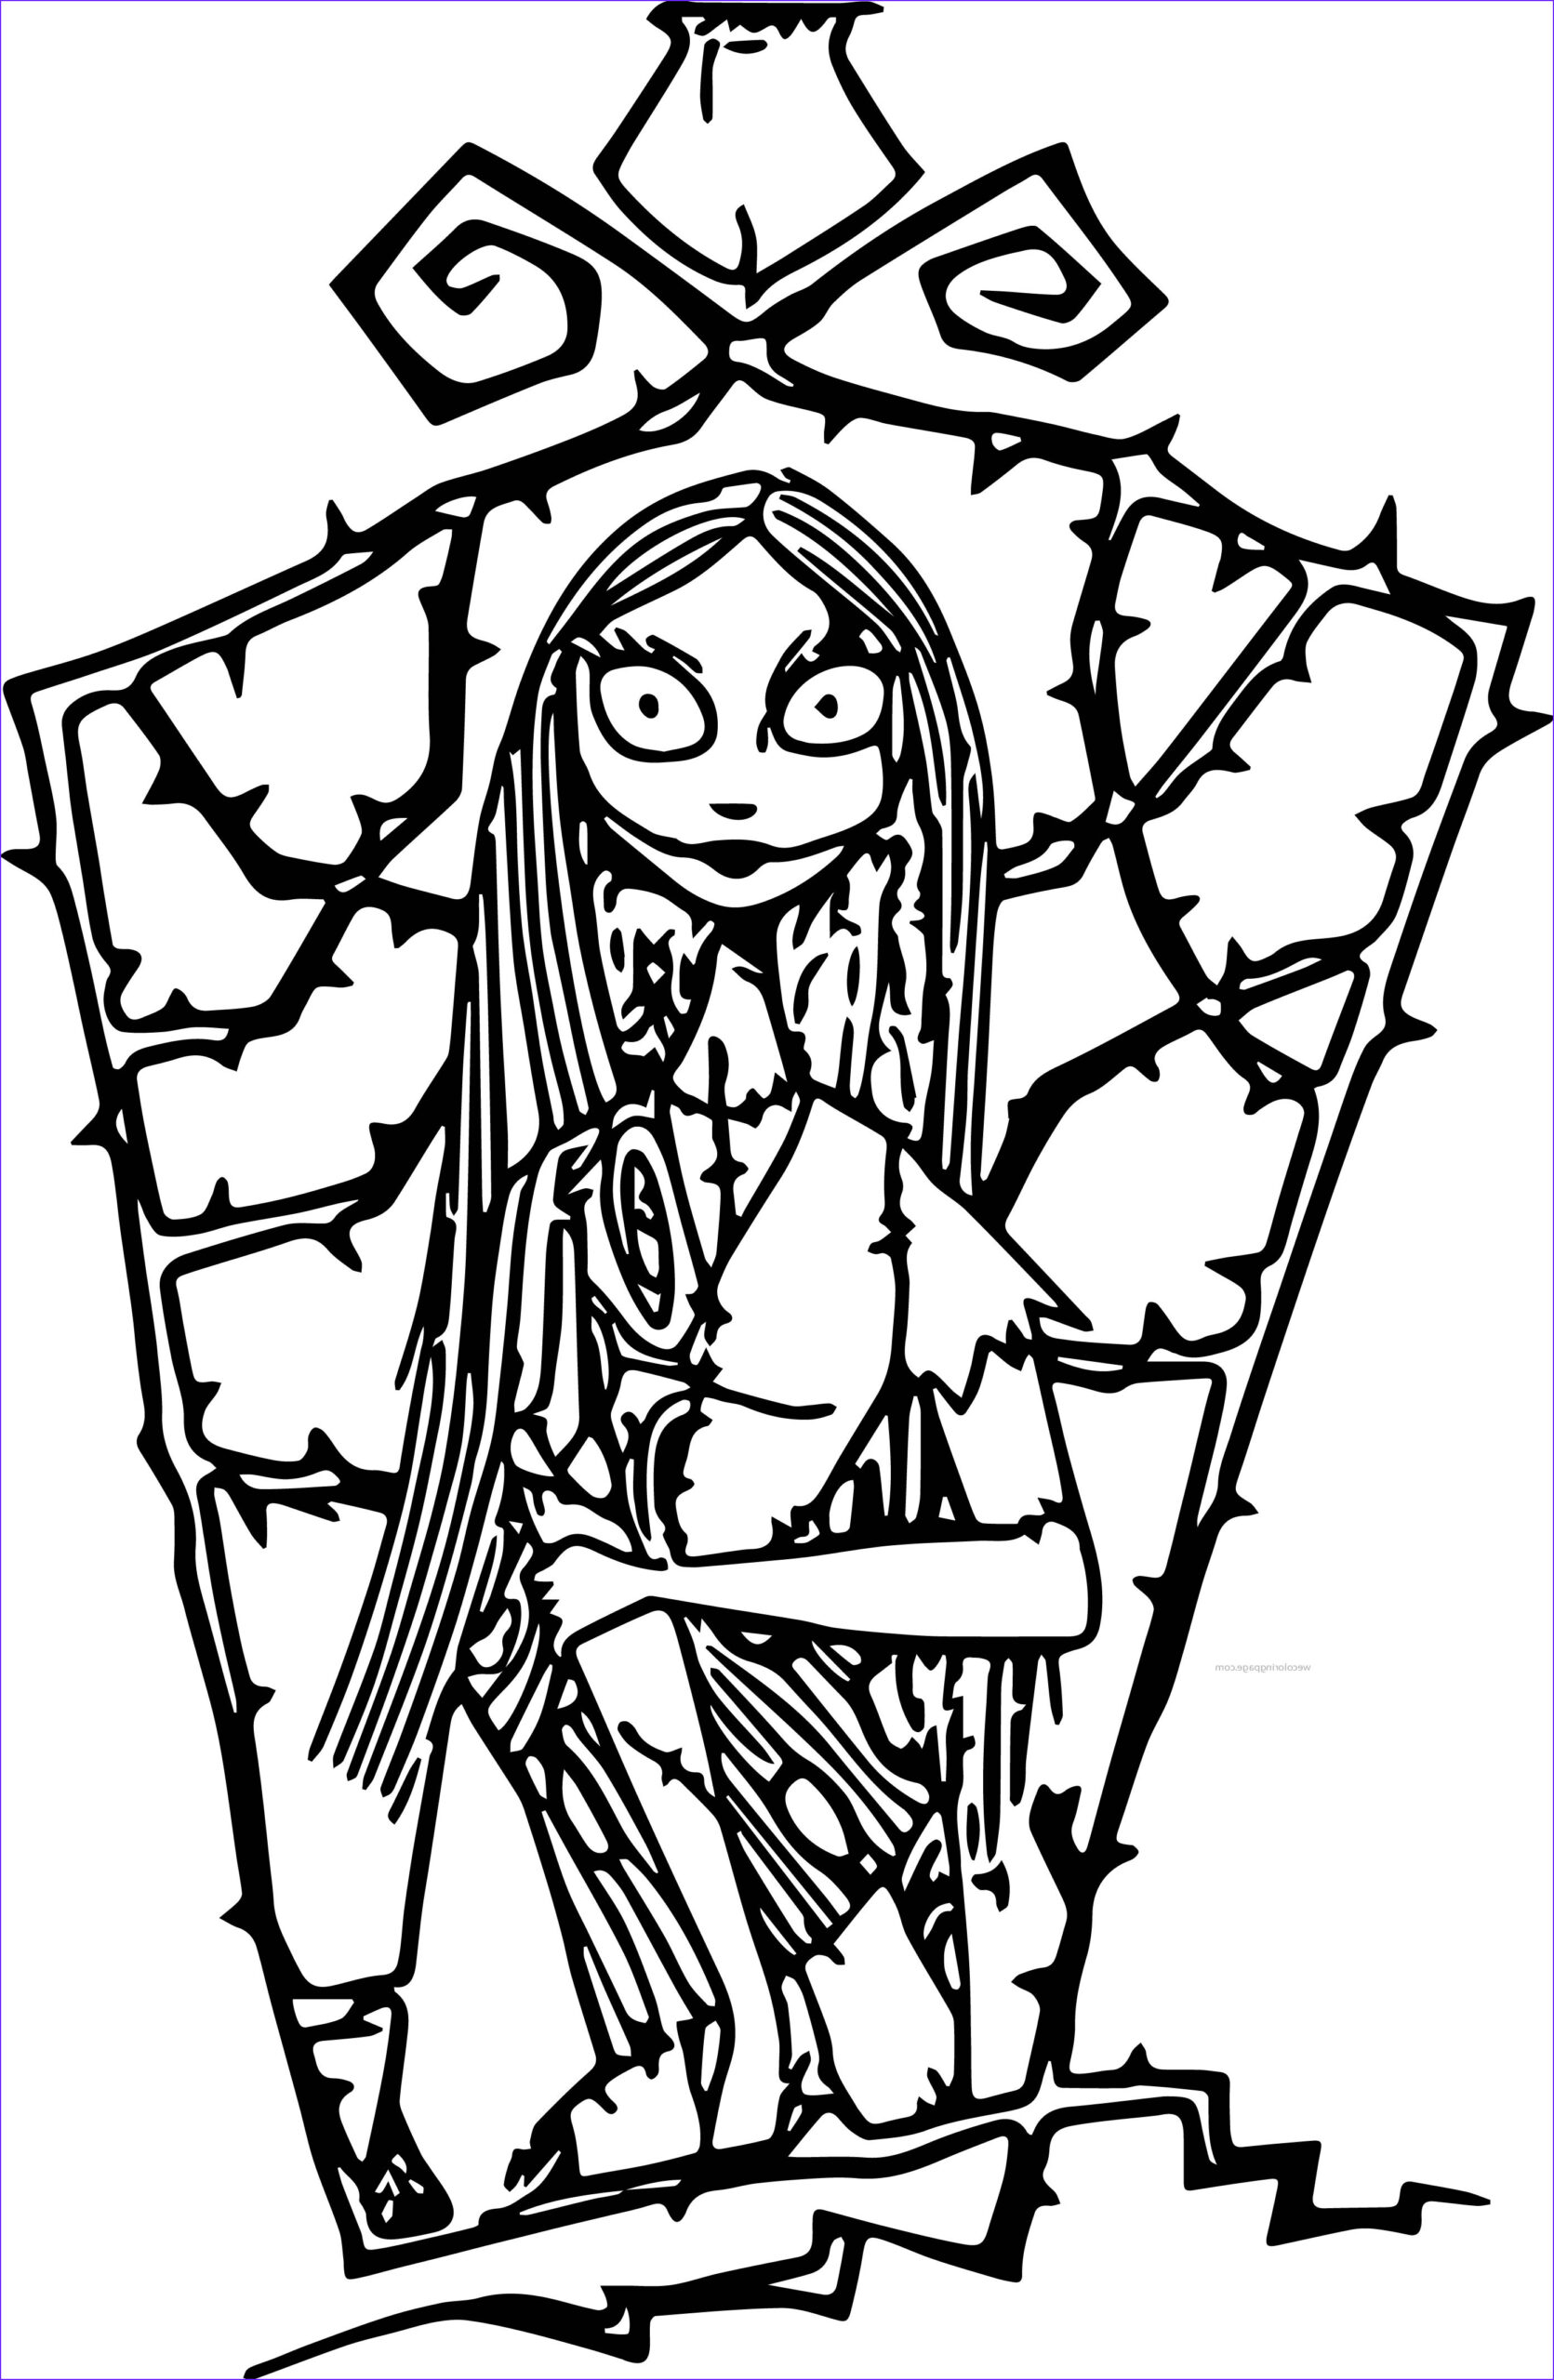 Nightmare before Christmas Coloring Pages Unique Photos Free Printable Nightmare before Christmas Coloring Pages